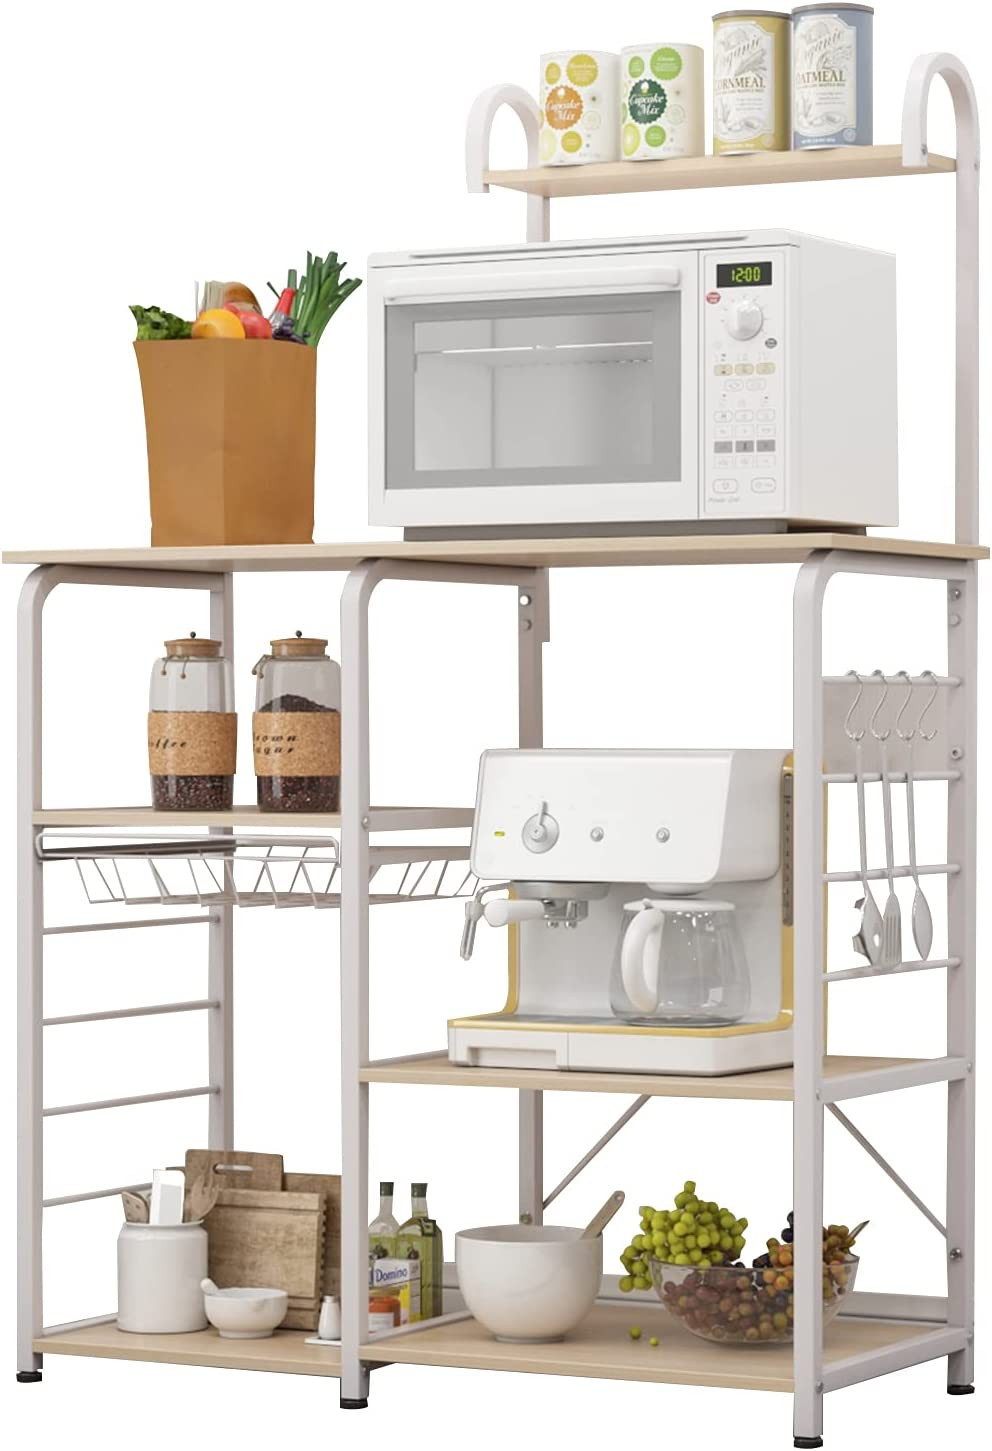 Soges Large-scale sale Multi-Functional Kitchen Baker's Rack Microwave Recommendation Oven Stand